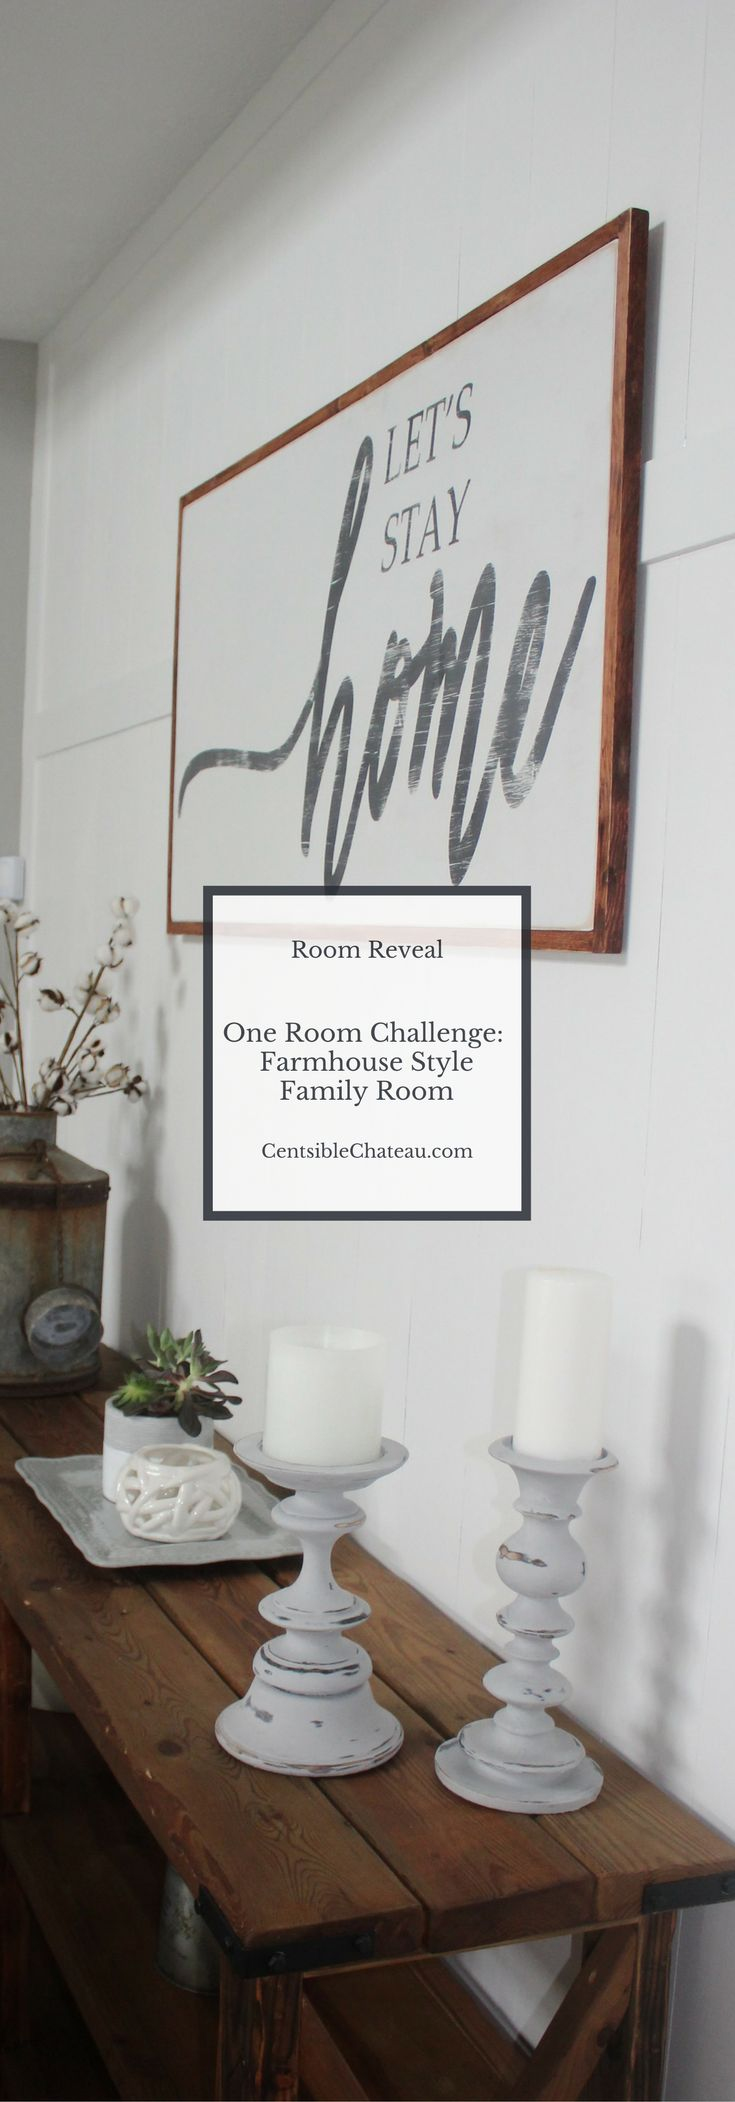 Our farmhouse style family room makeover is part of the @oneroomchallenge by @callingithome and @housebeautiful. See how we redecorated the room on a budget and used fixer upper ideas to get the perfect room